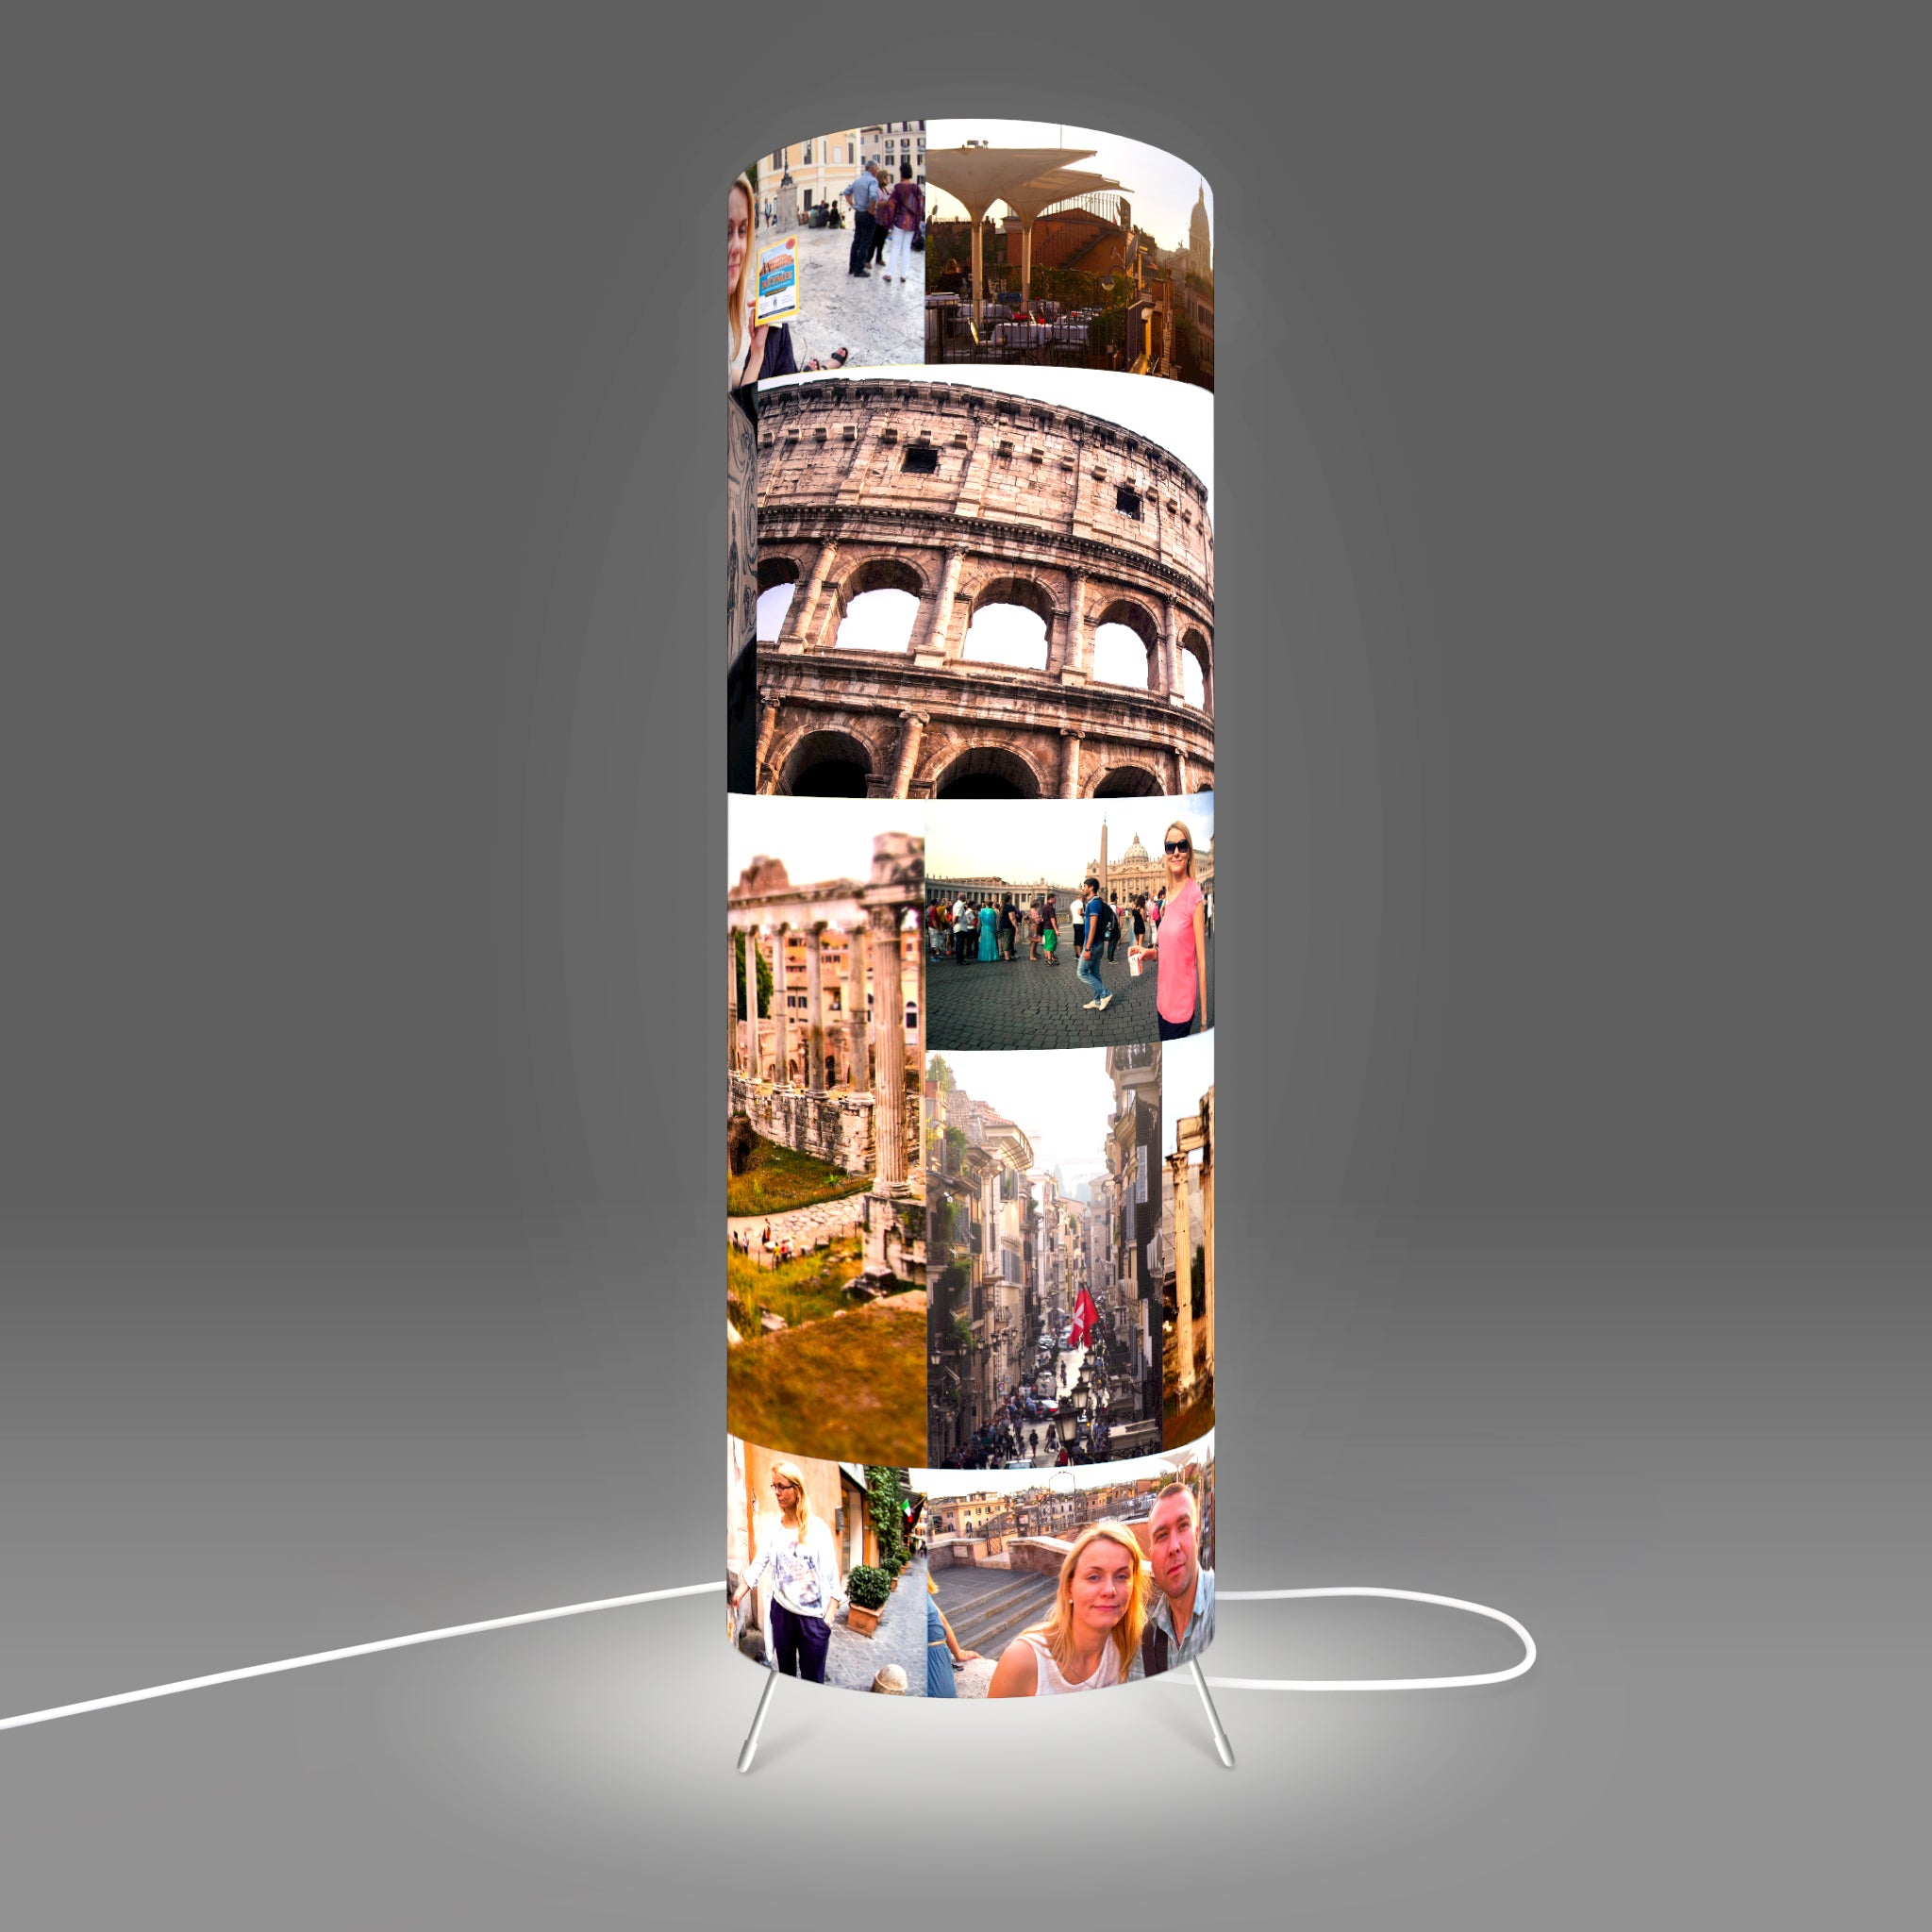 Personalised Table Lamp with print images designed by Fotbee